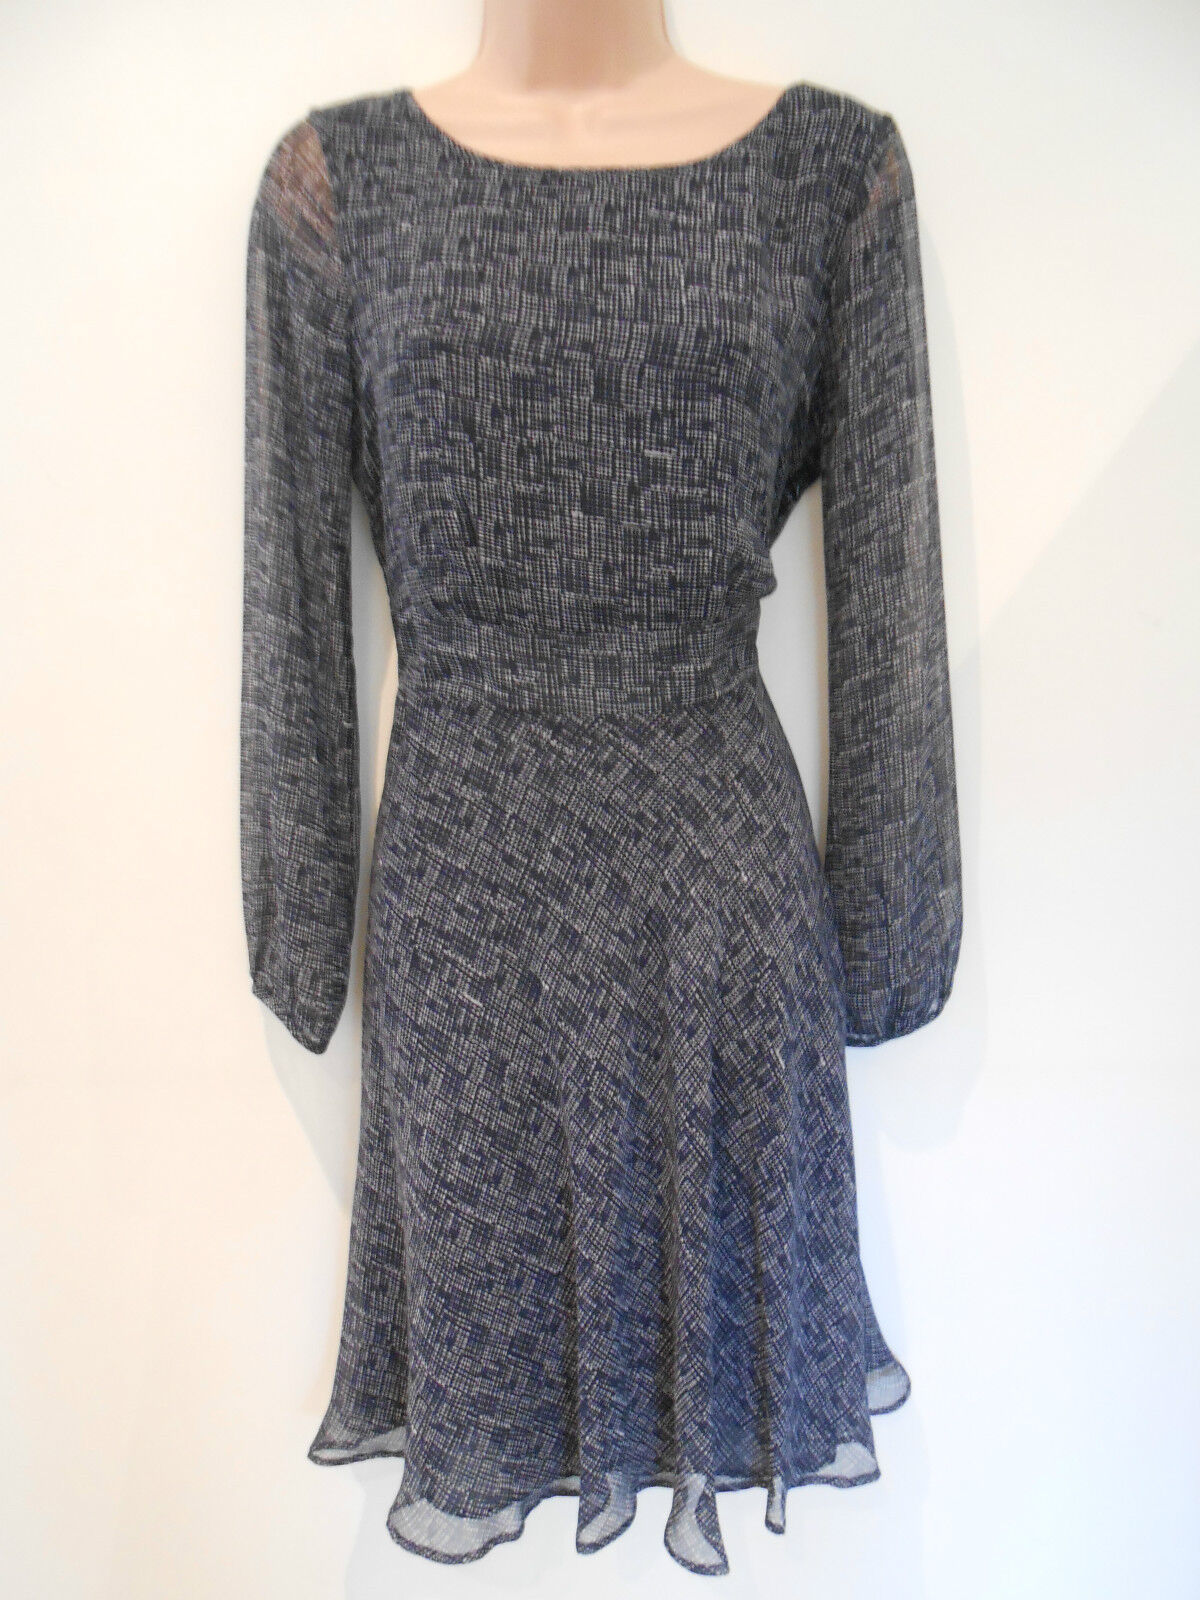 e46010af035f9 M S Collection Mix Sleeve Loose Party Dress (NEW) UK size 8-.00 Navy Long  nsnmjk2476-Dresses